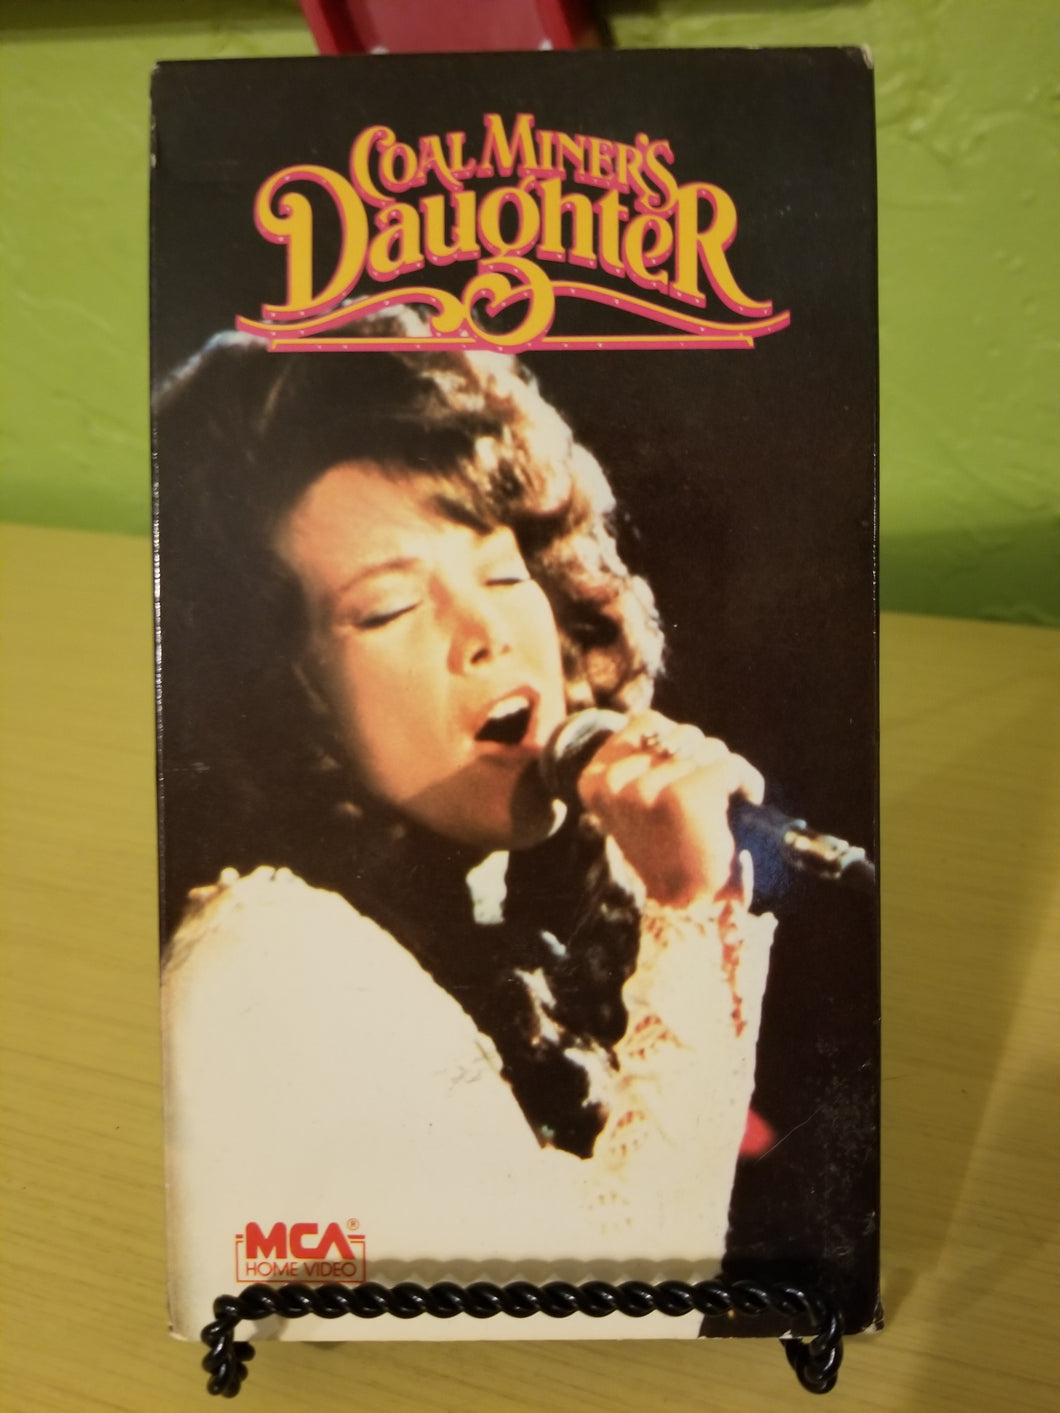 Coal Miner's Daughter VHS